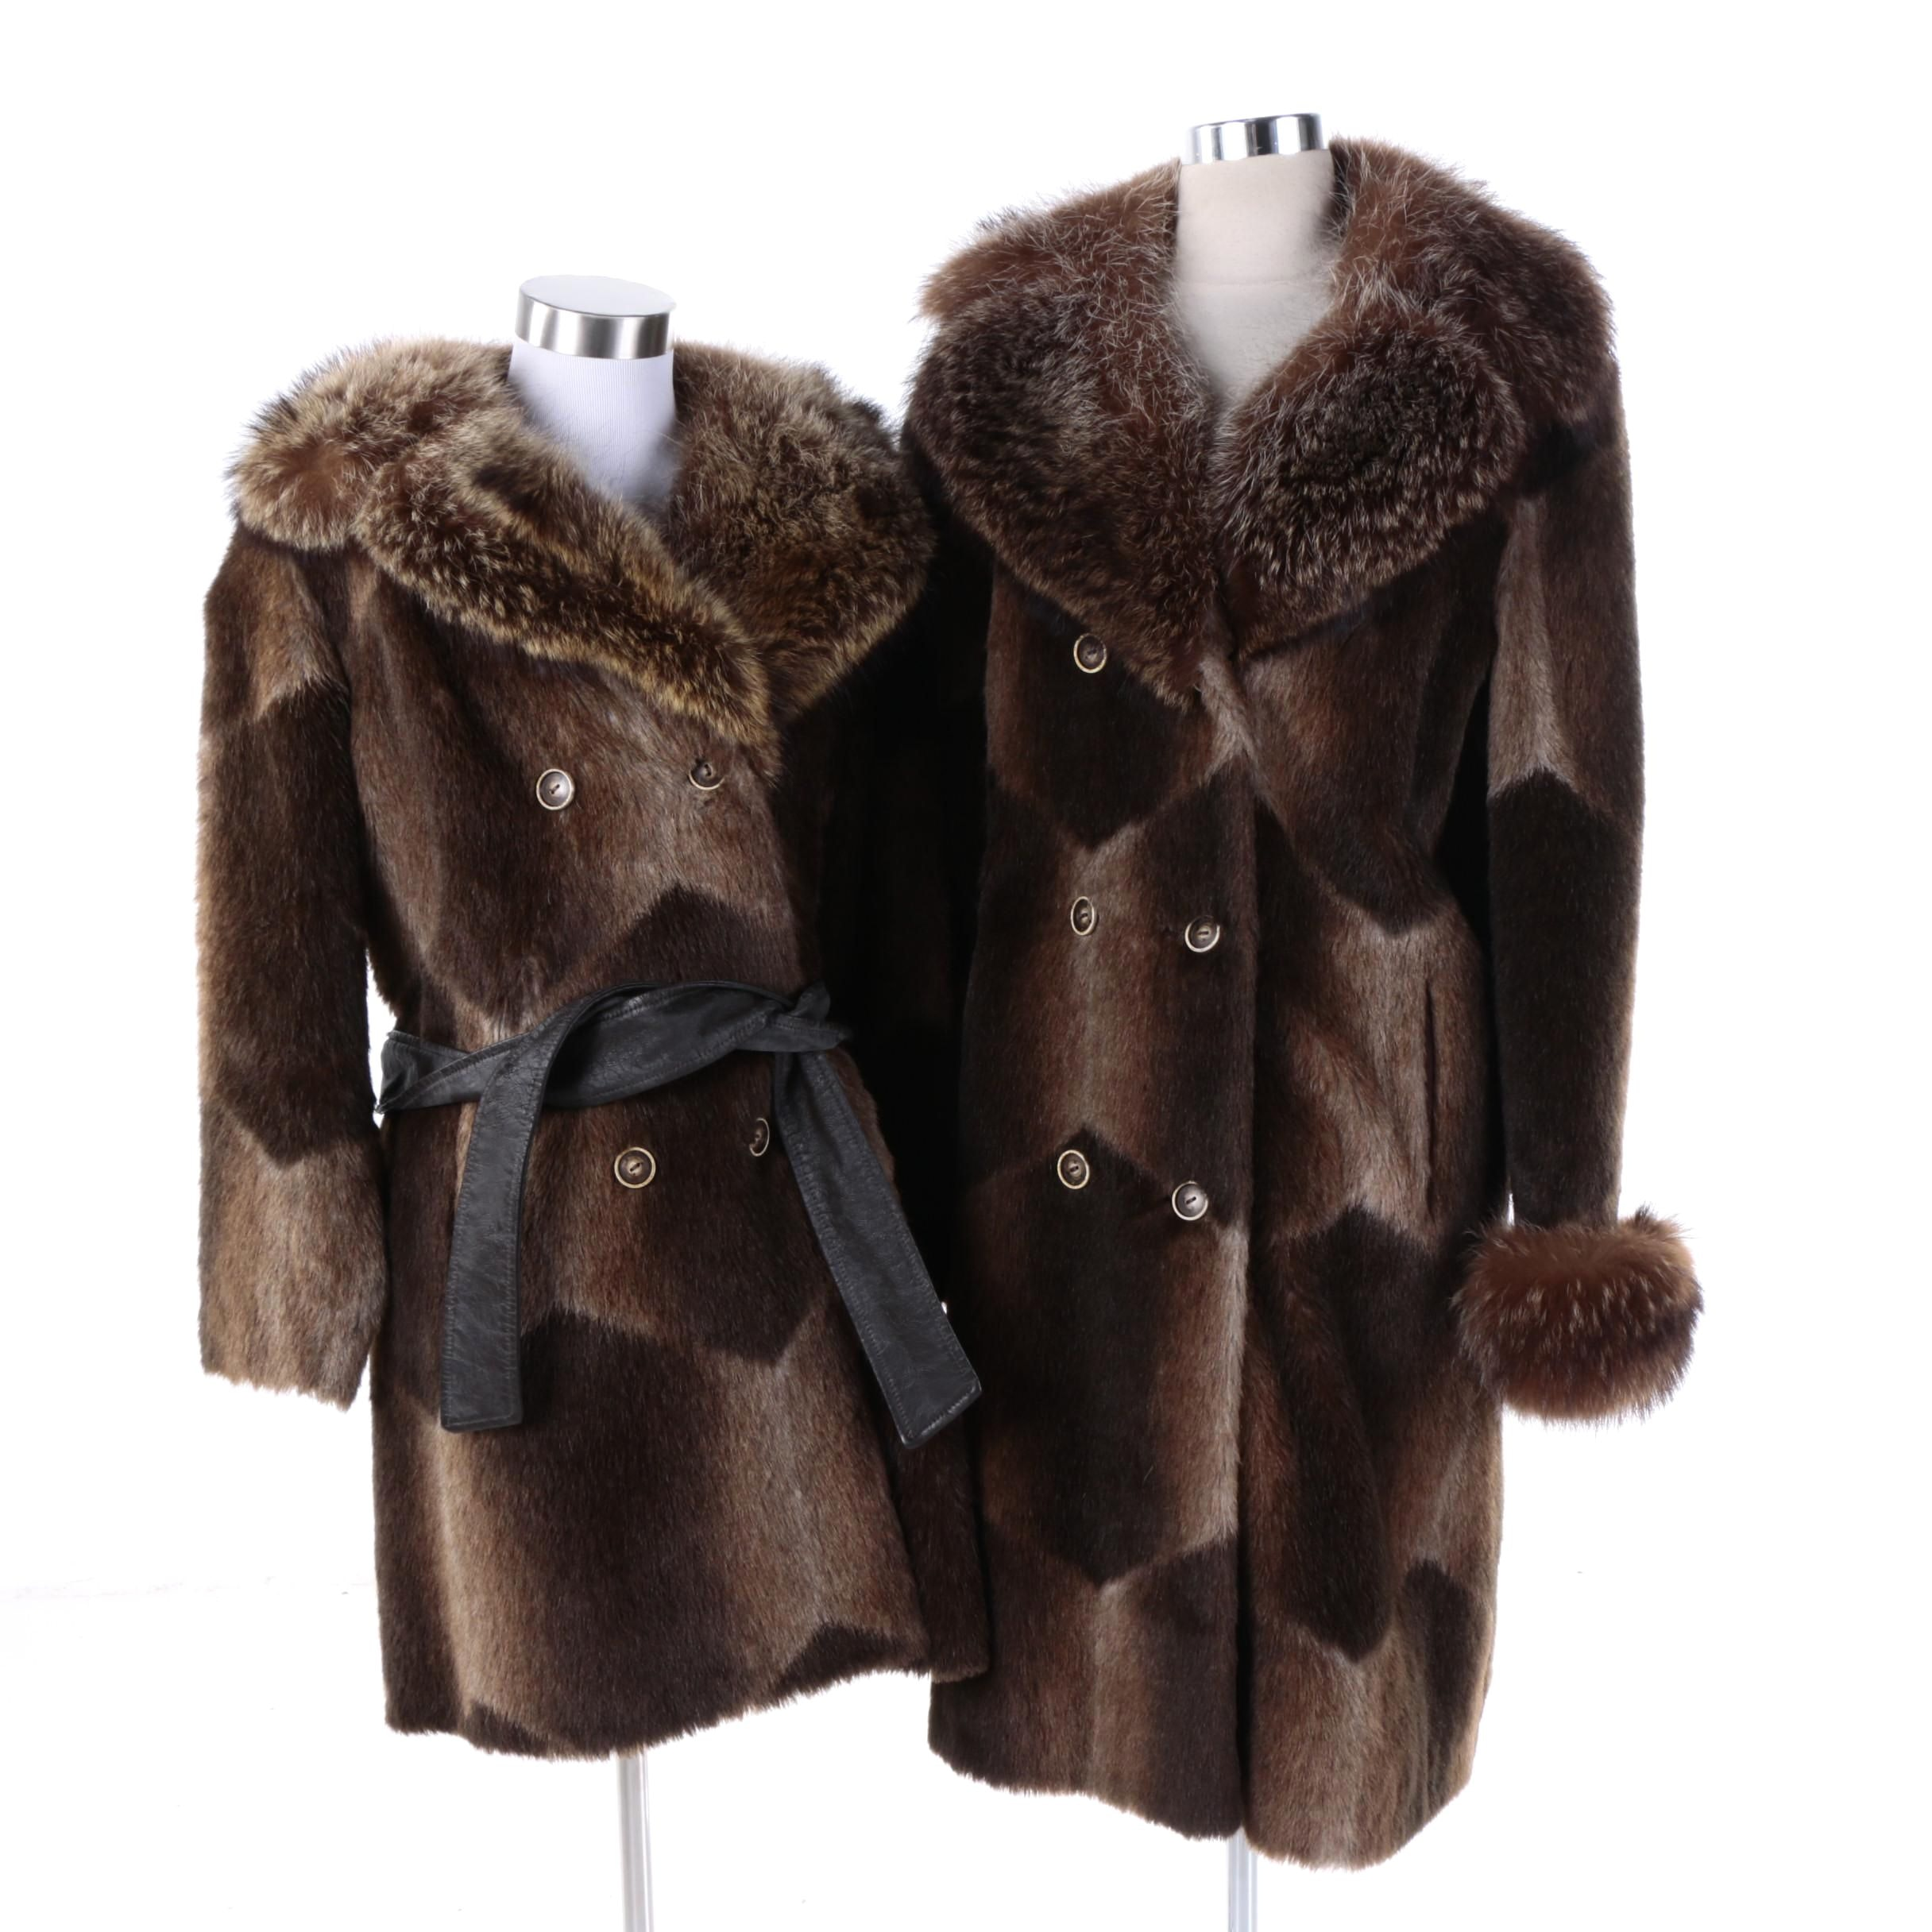 Circa 1960s Vintage Faux Fur Coats with Raccoon and Fox Fur Collars